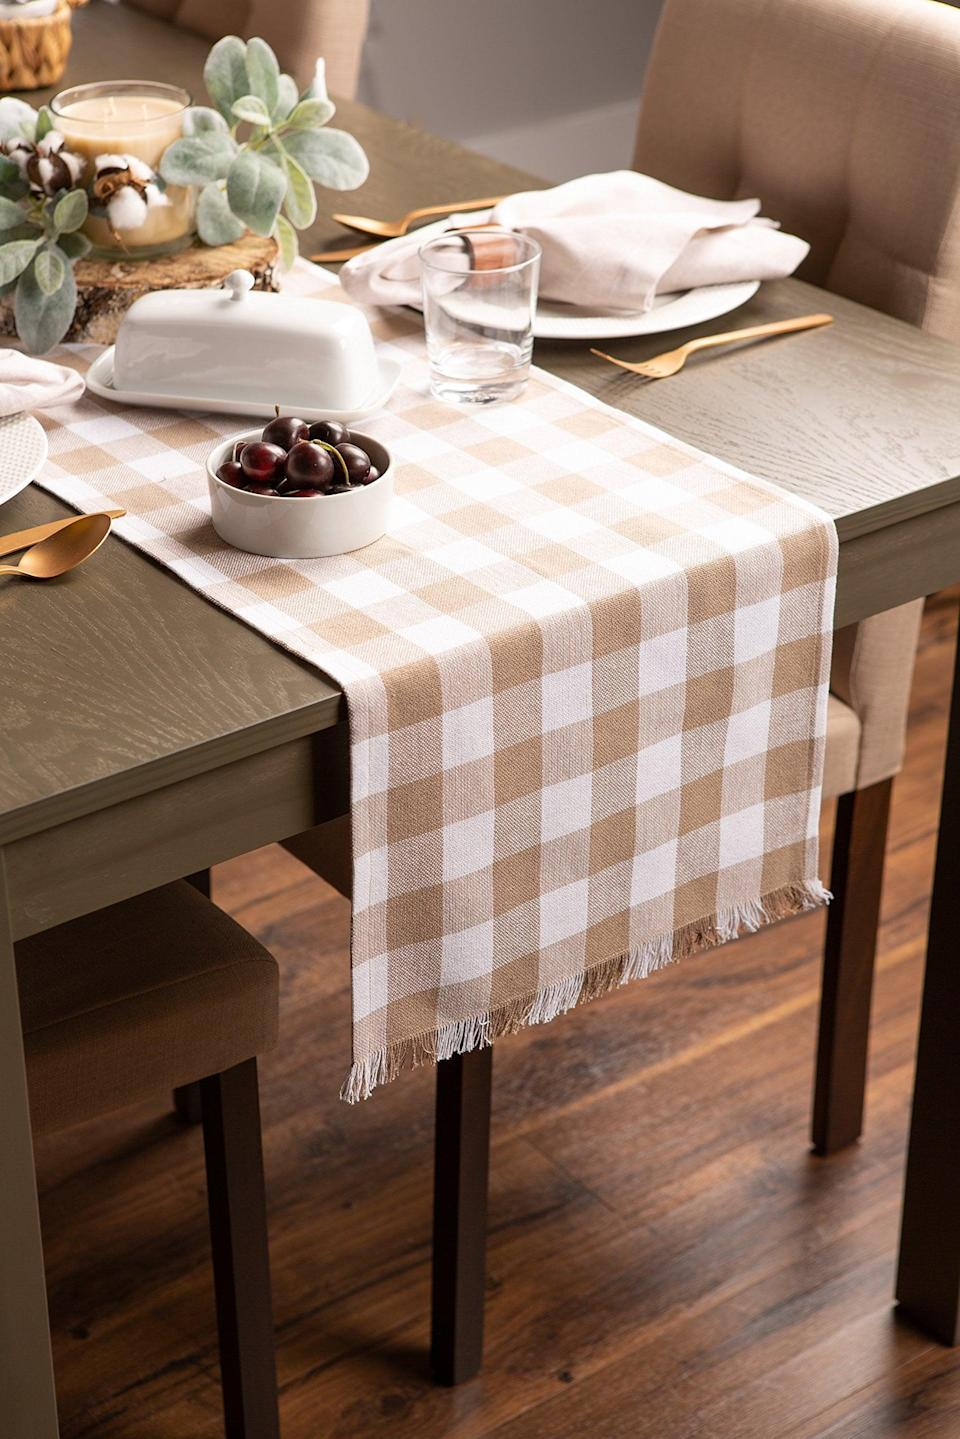 <p>This <span>Table Checkered Stone Runner</span> ($9) will help create the perfect table setting.</p>